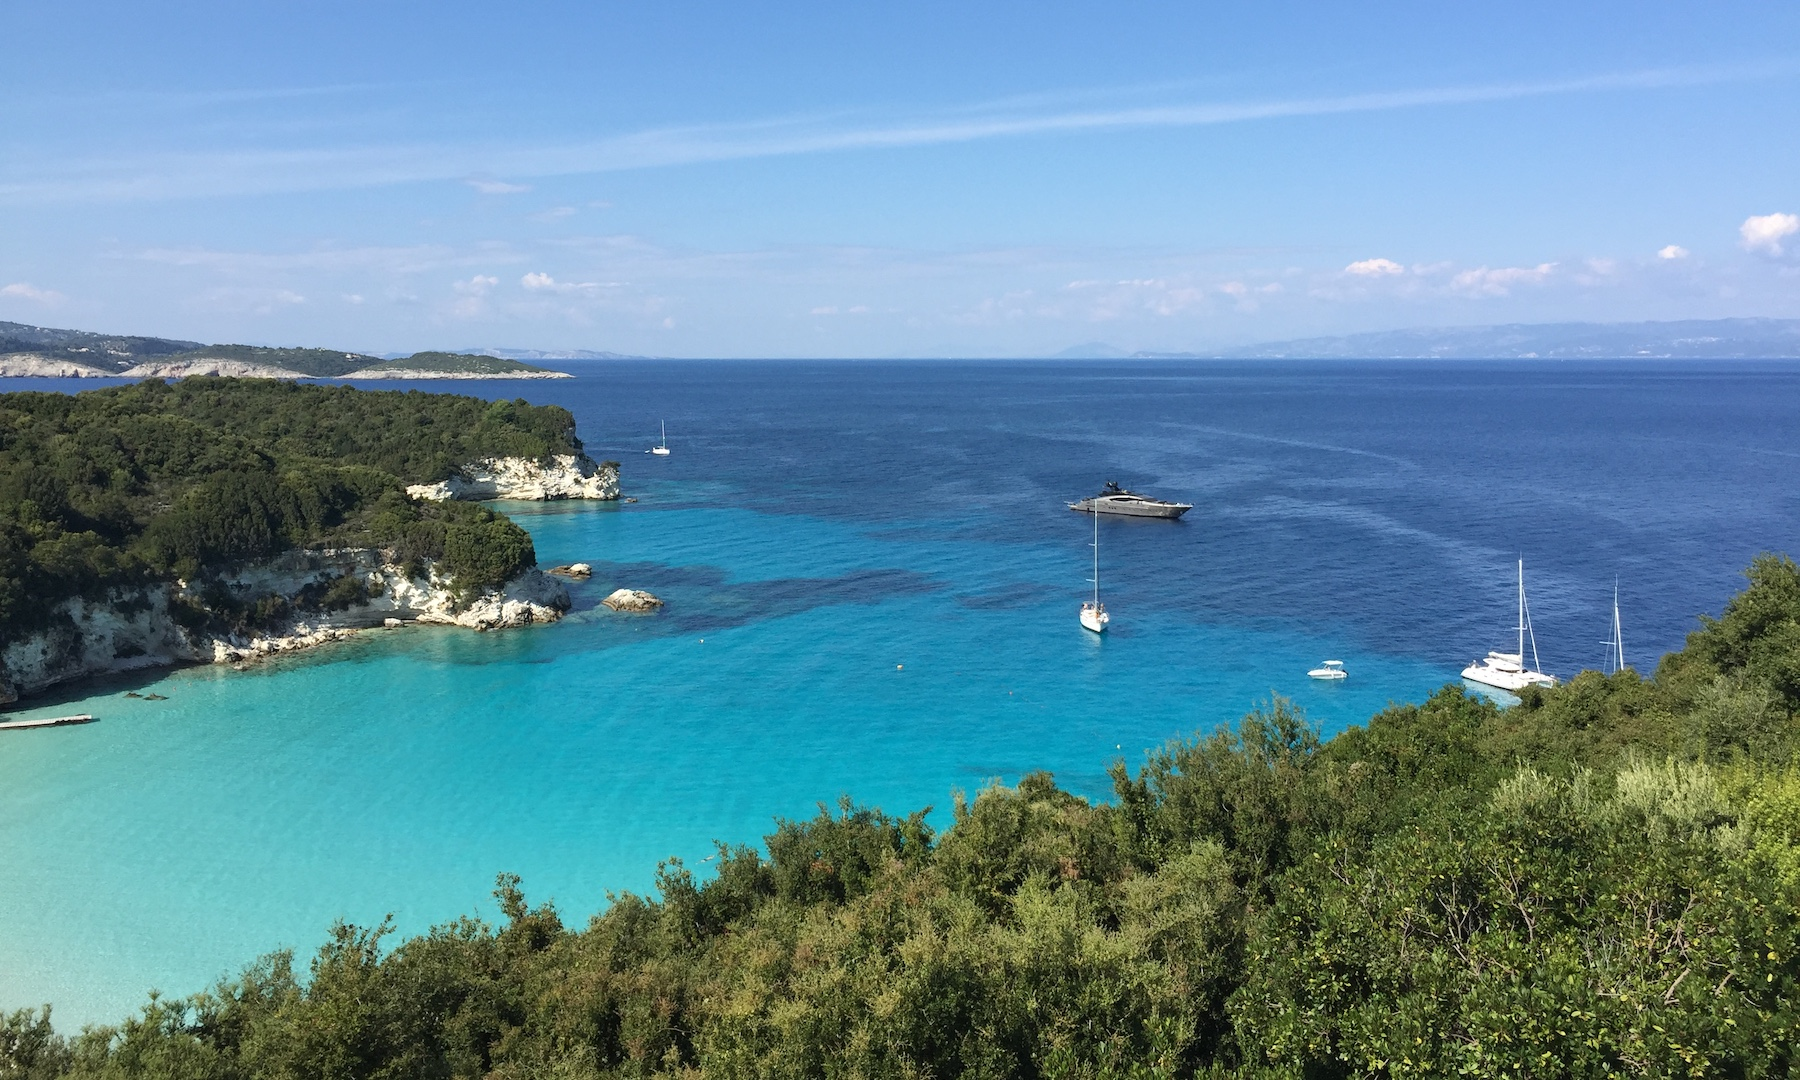 View from the Bella Vista restaurant in Antipaxos, Greece